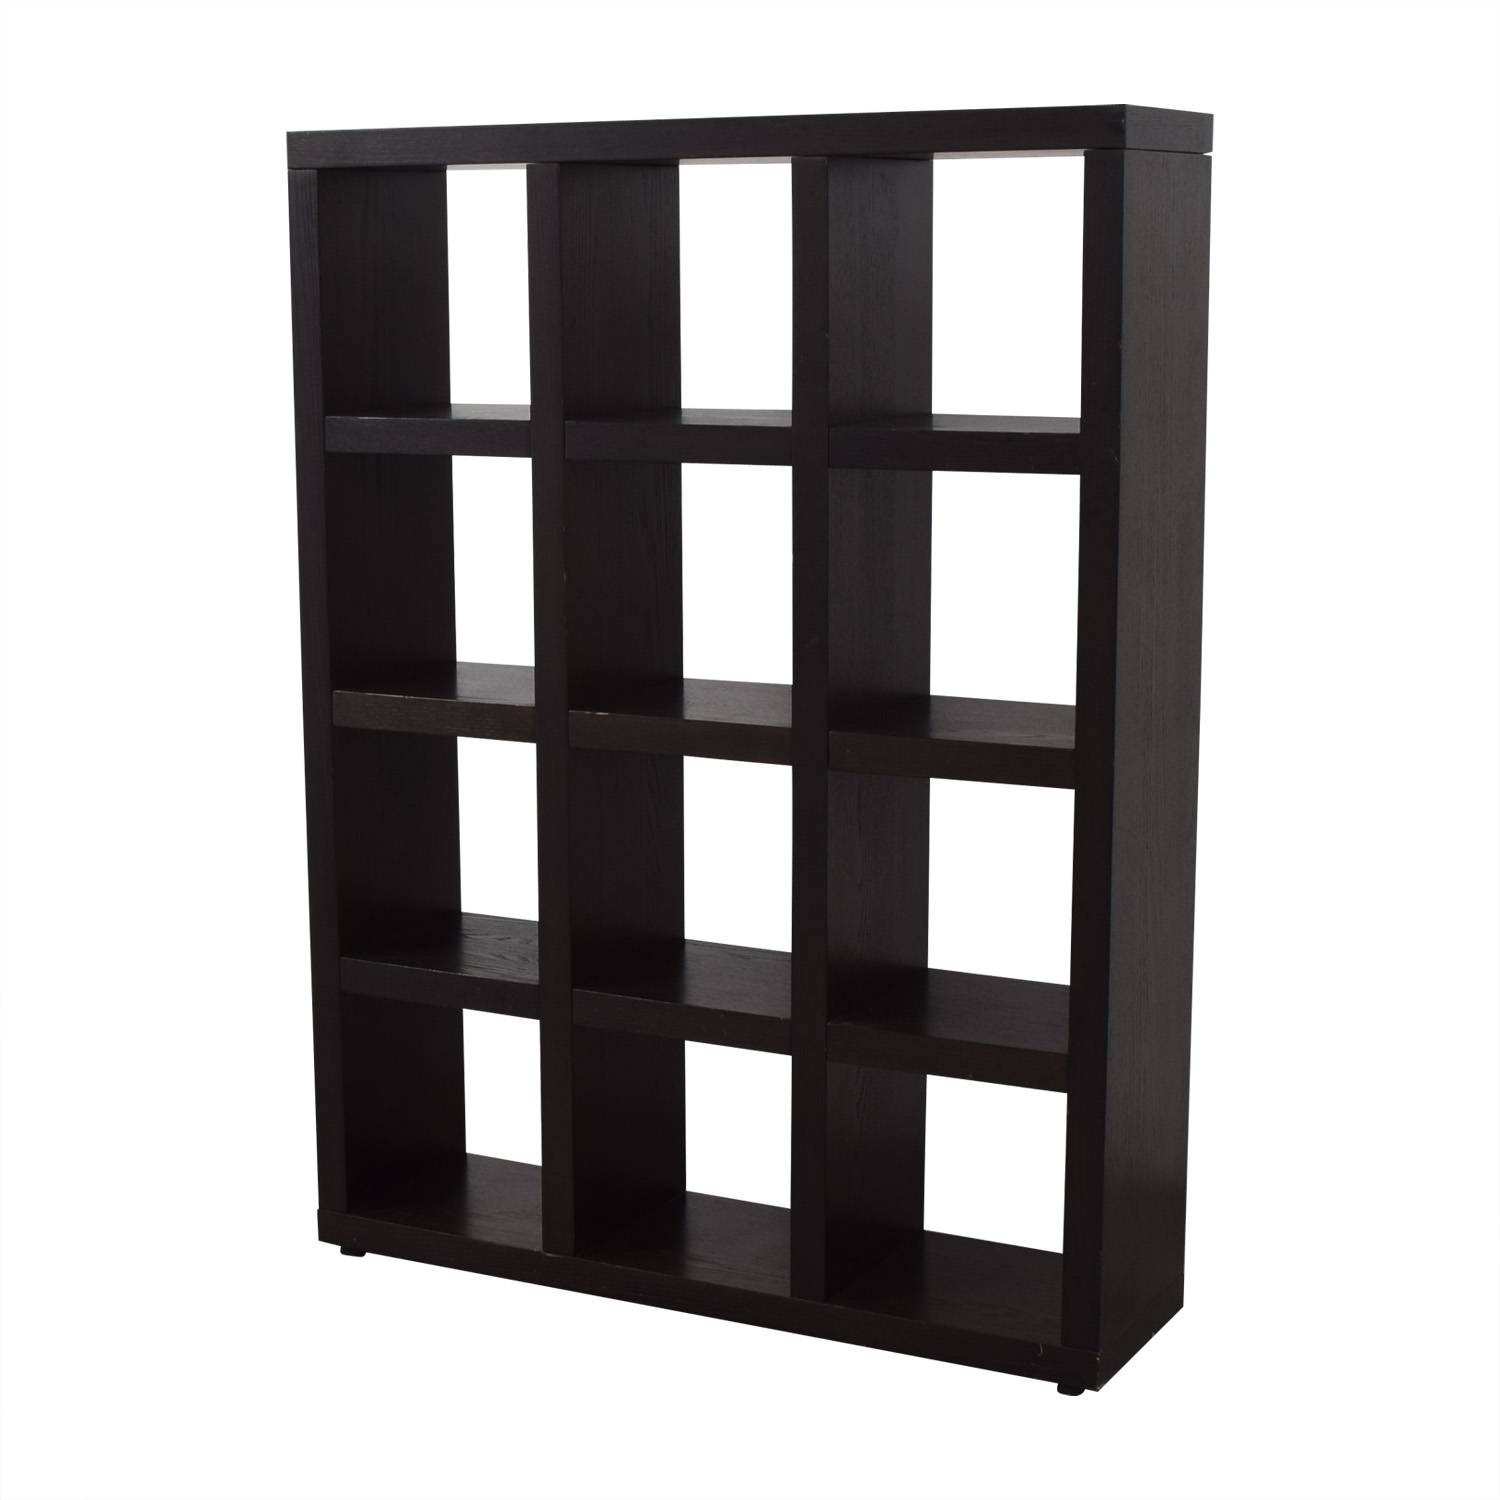 West Elm West Elm Tall Black Cube Bookshelf coupon